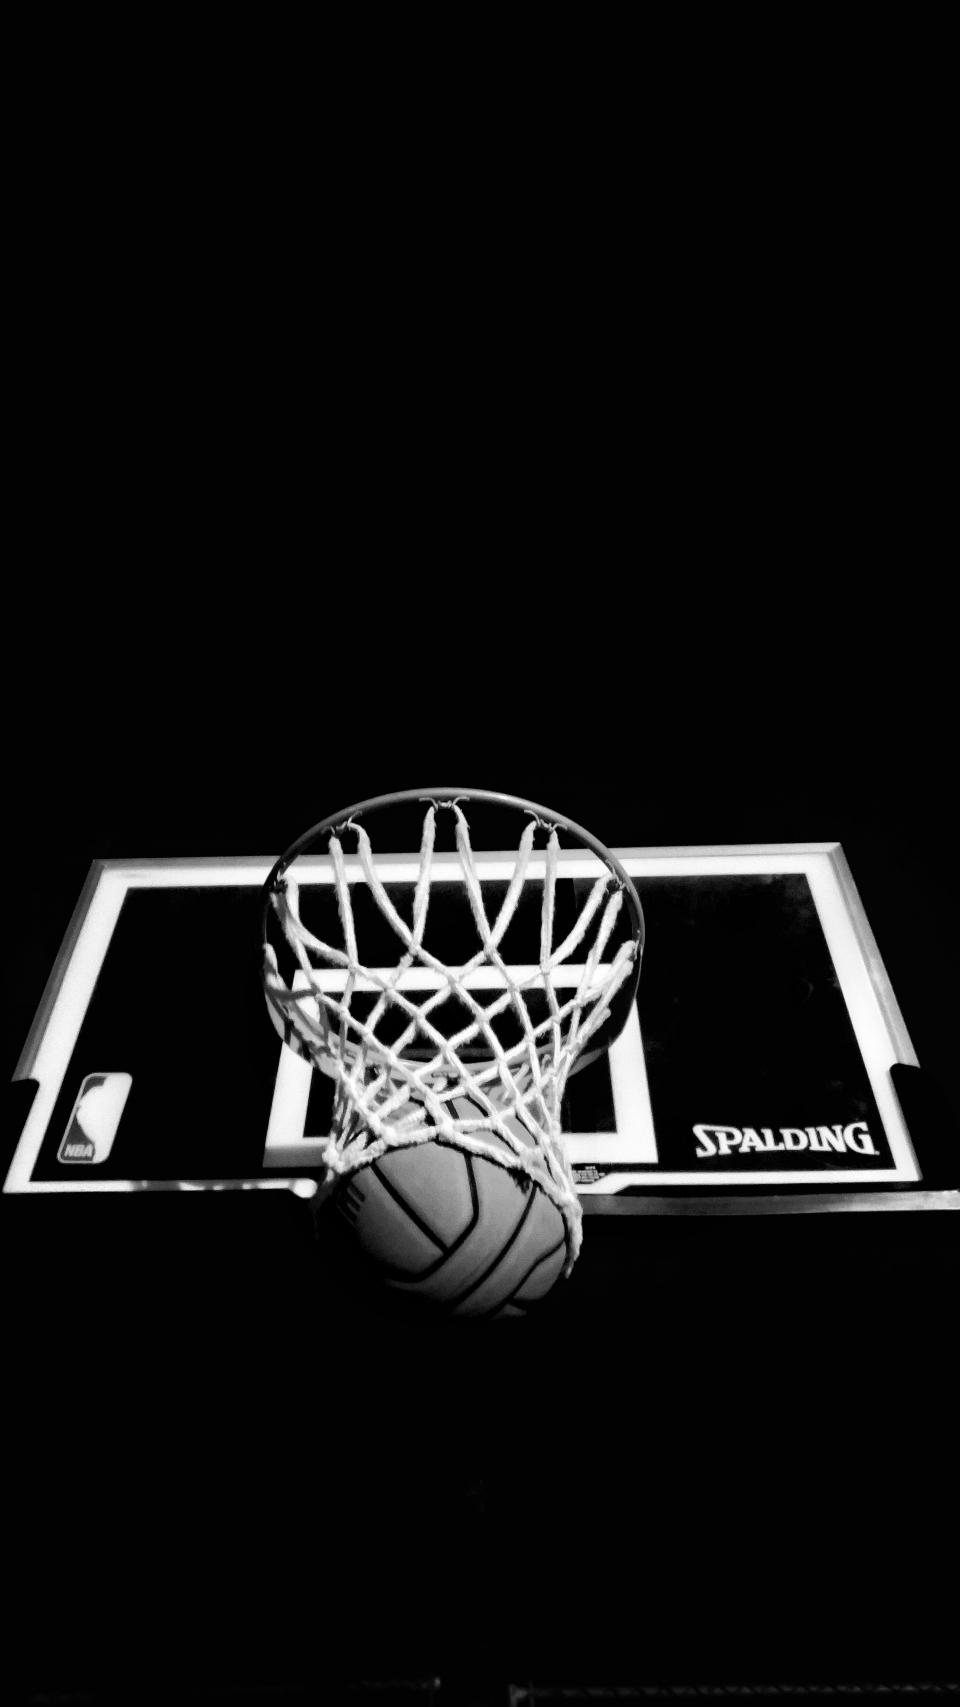 dark, ring, board, basketball, ball, sport